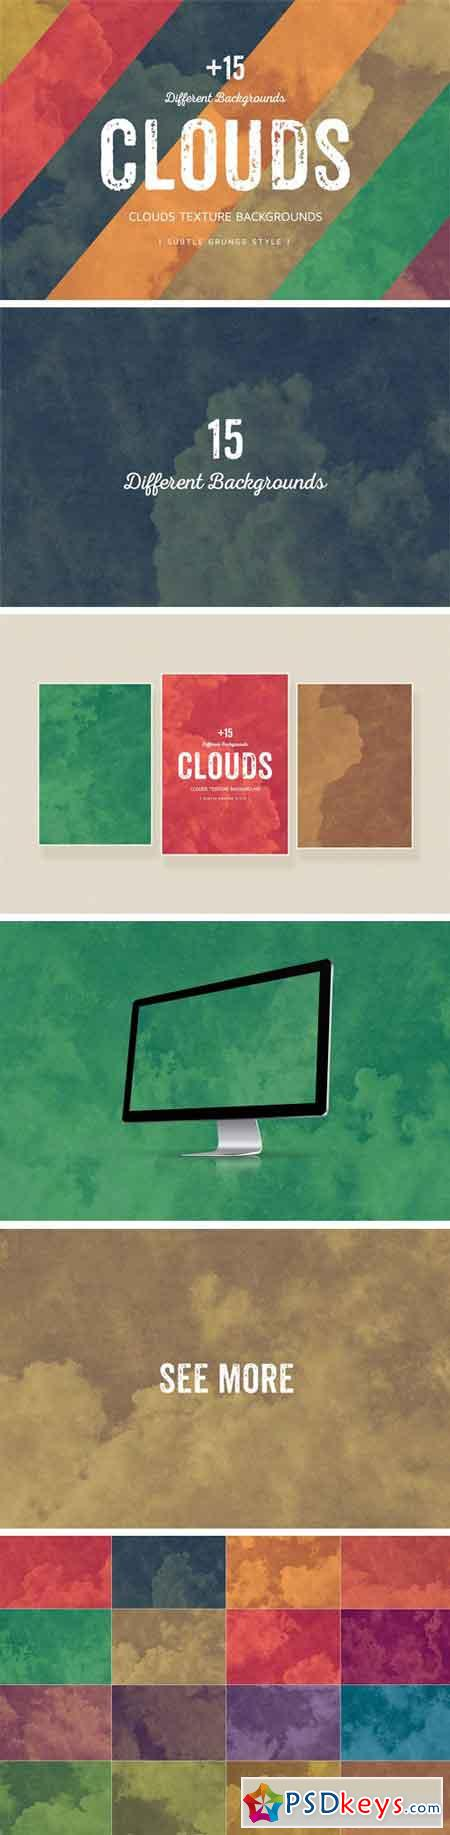 Clouds Texture Backgrounds 1276777